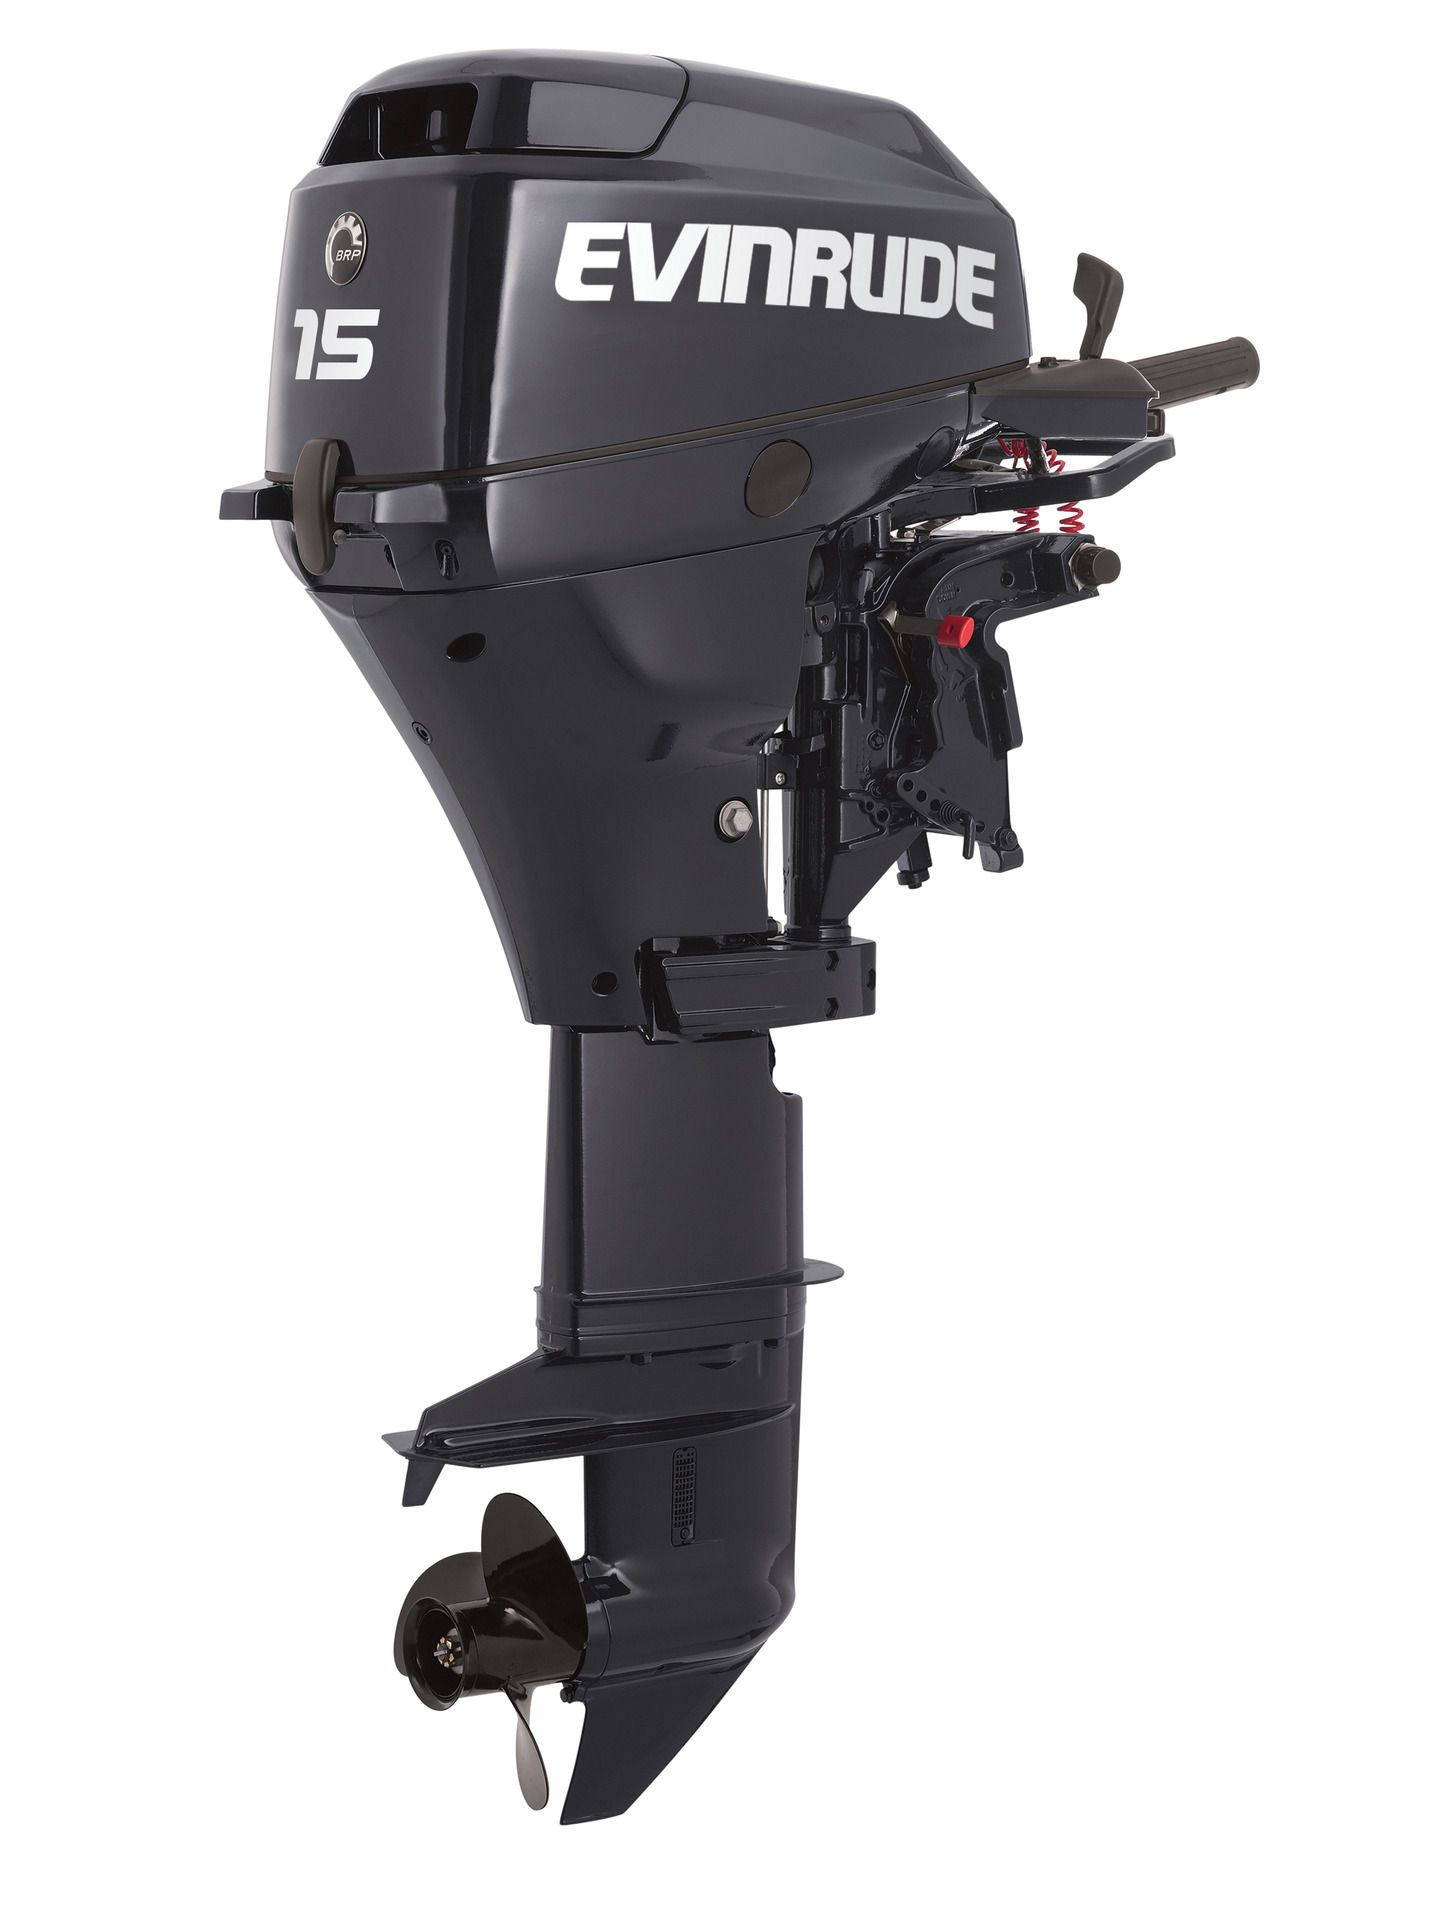 Evinrude 15 hp outboard Motor For sale king county wa